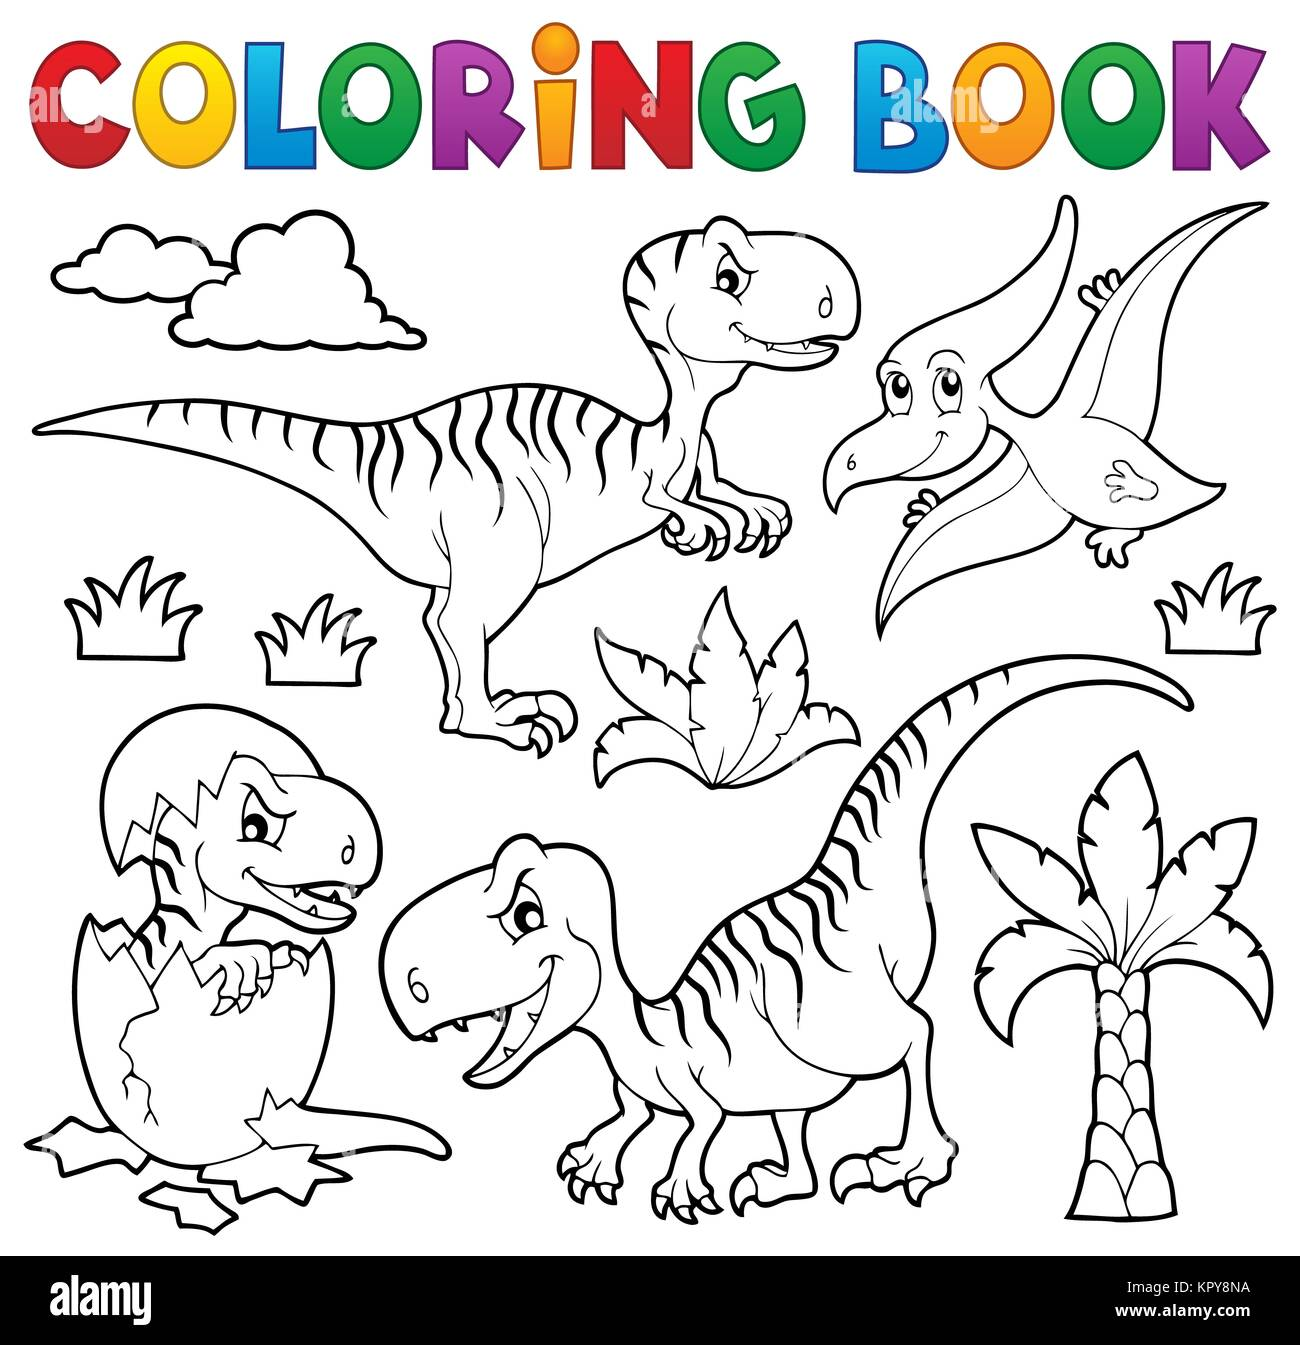 Dinosaurs Picture Stock Photos & Dinosaurs Picture Stock Images - Alamy